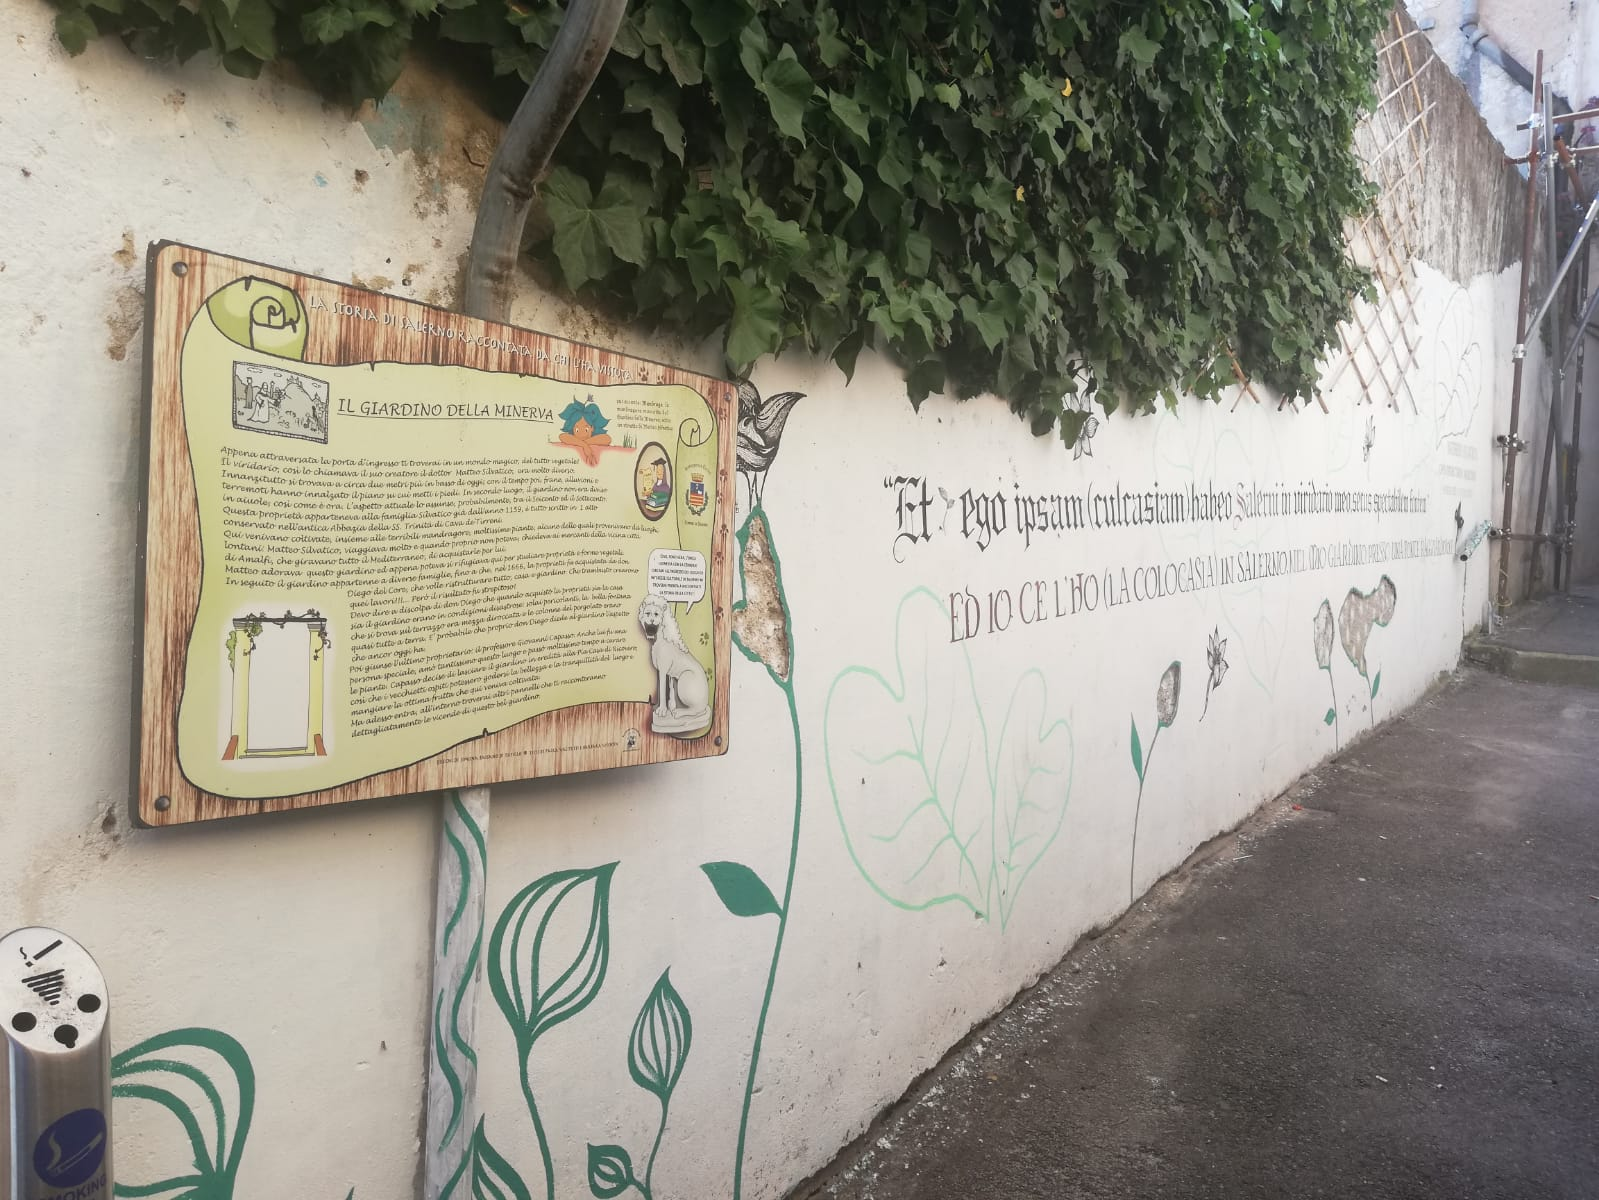 The Giardino della Minerva: cultural and natural capital regeneration in Salerno, Italy